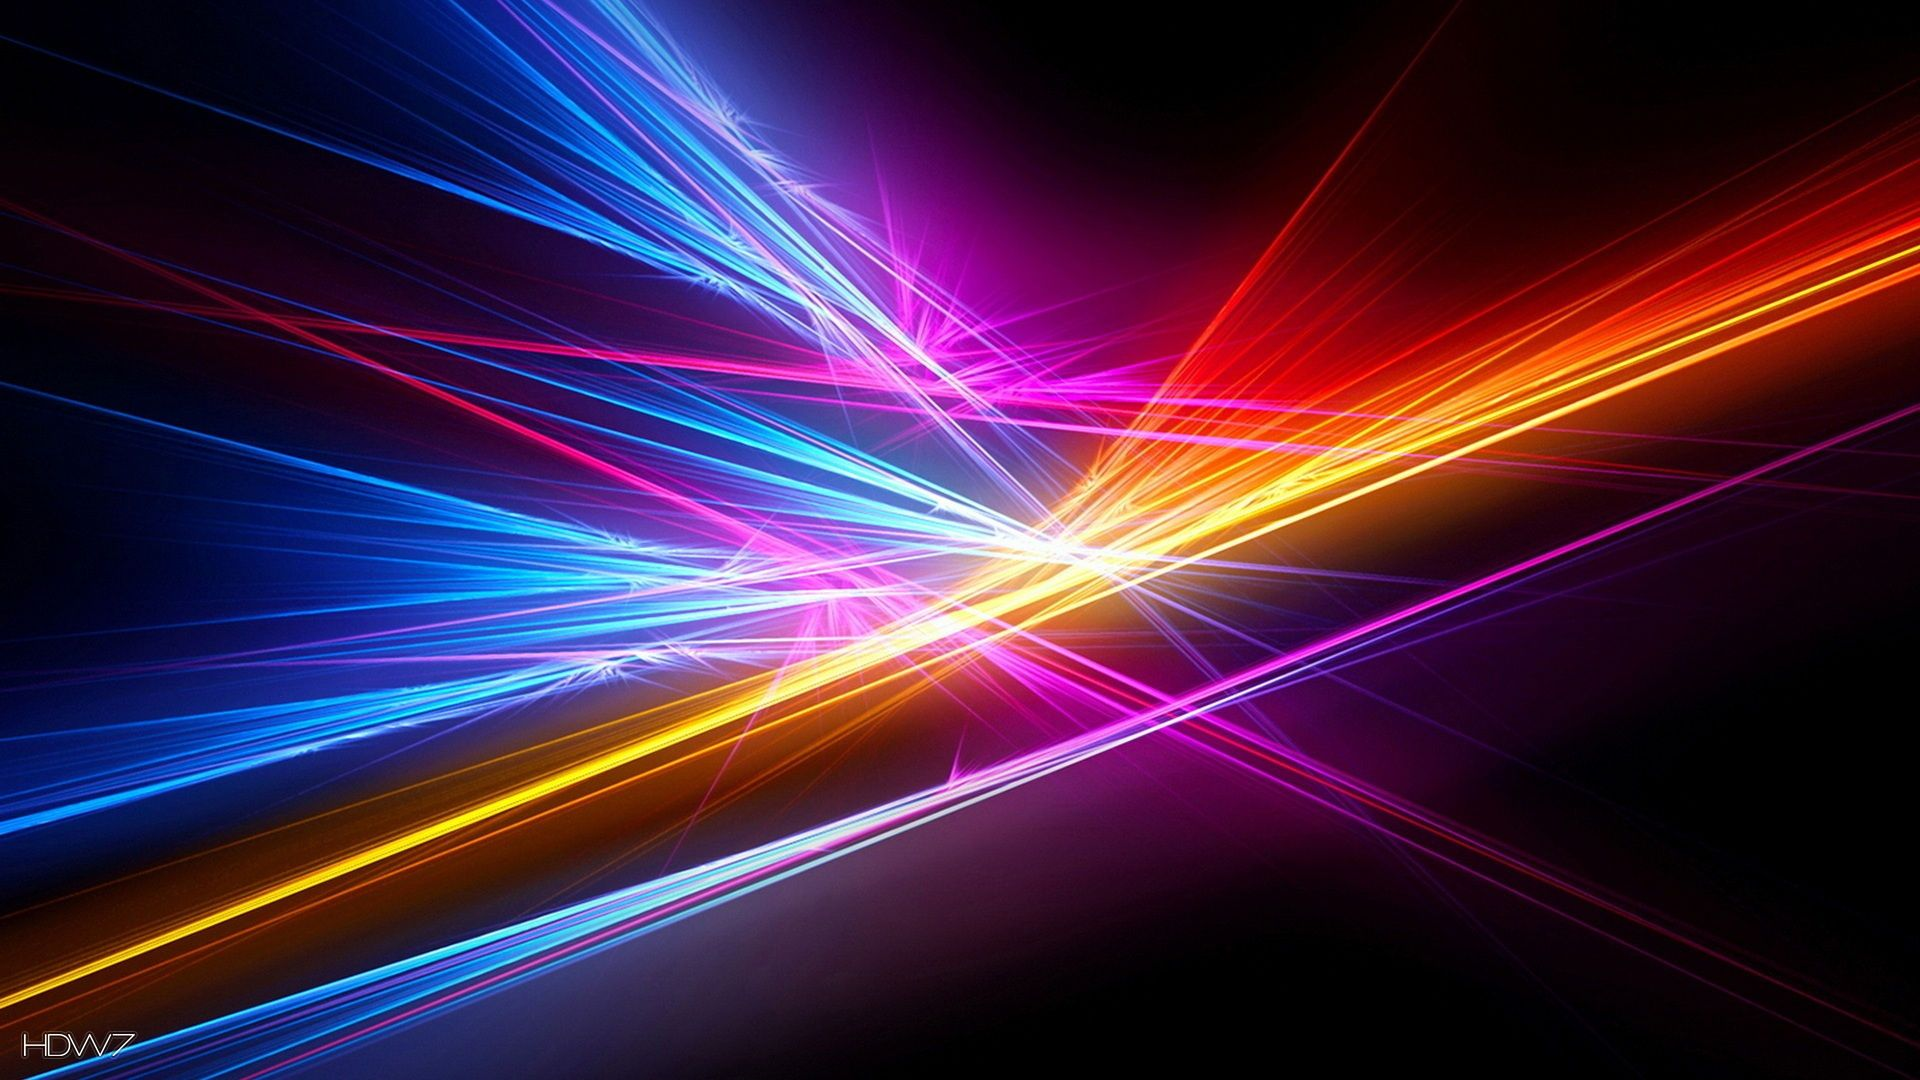 Abstract Electric Light Lines 1920x1080 Hd Wallpapers Gallery 151 Iphone Colors Background Hd Wallpaper Android Phone Wallpaper